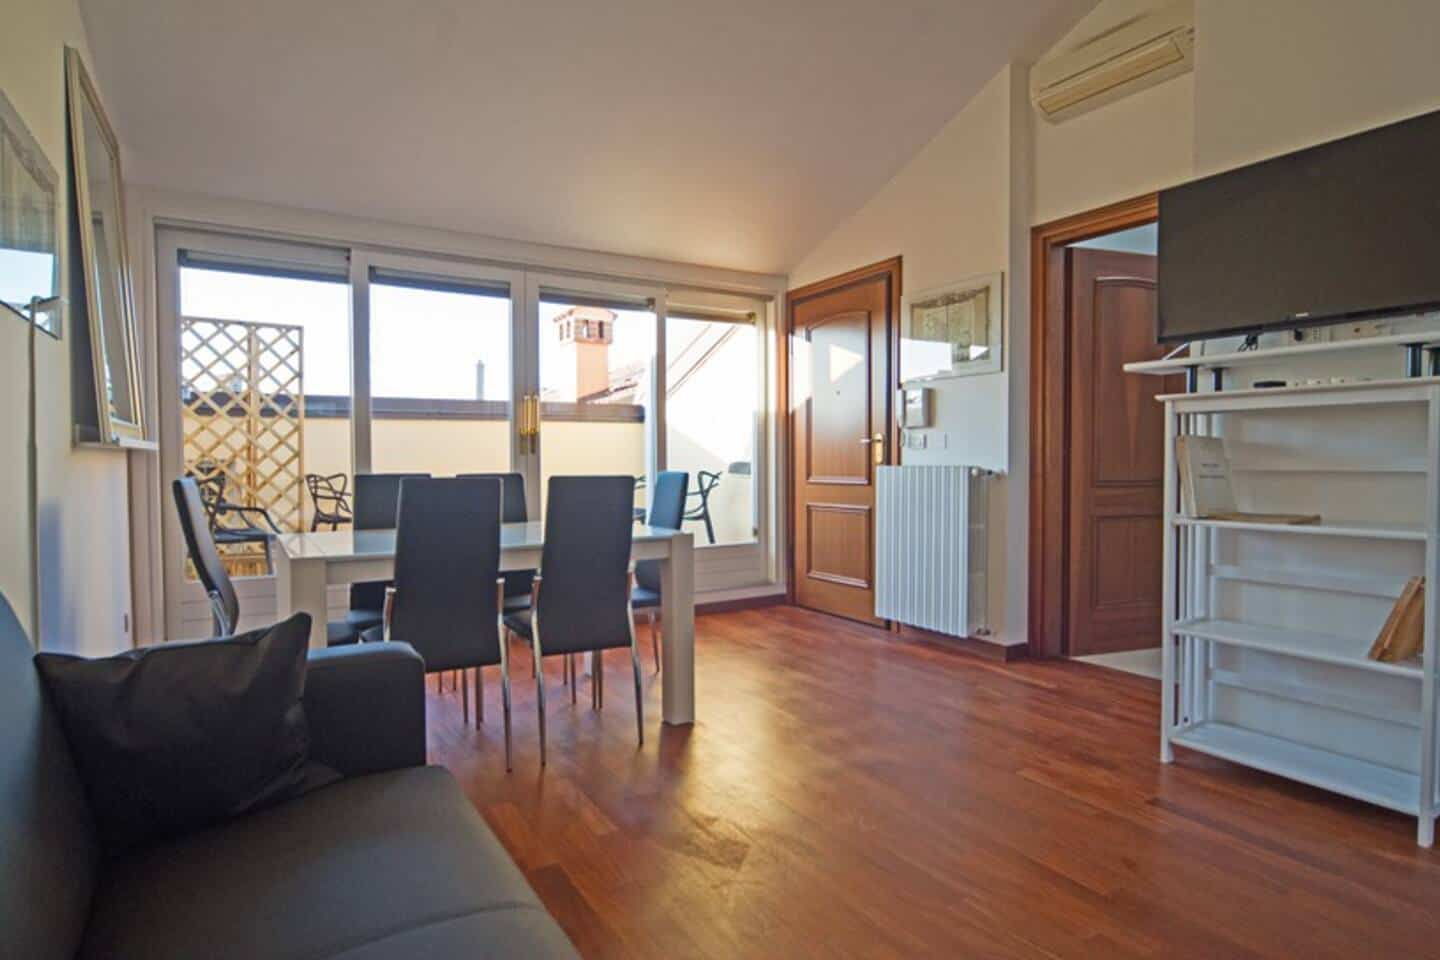 Image of Airbnb rental in Bologna, Italy